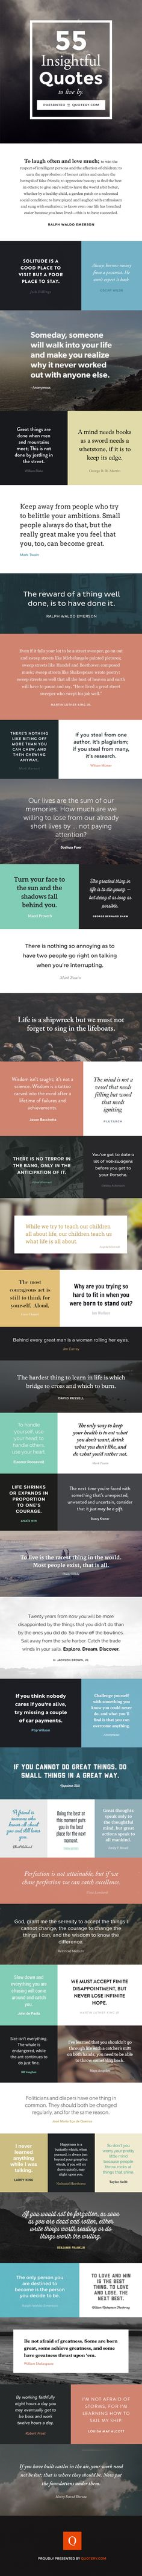 55-insightful-quotes-to-live-by-infographic.png 800×14,478 pixels